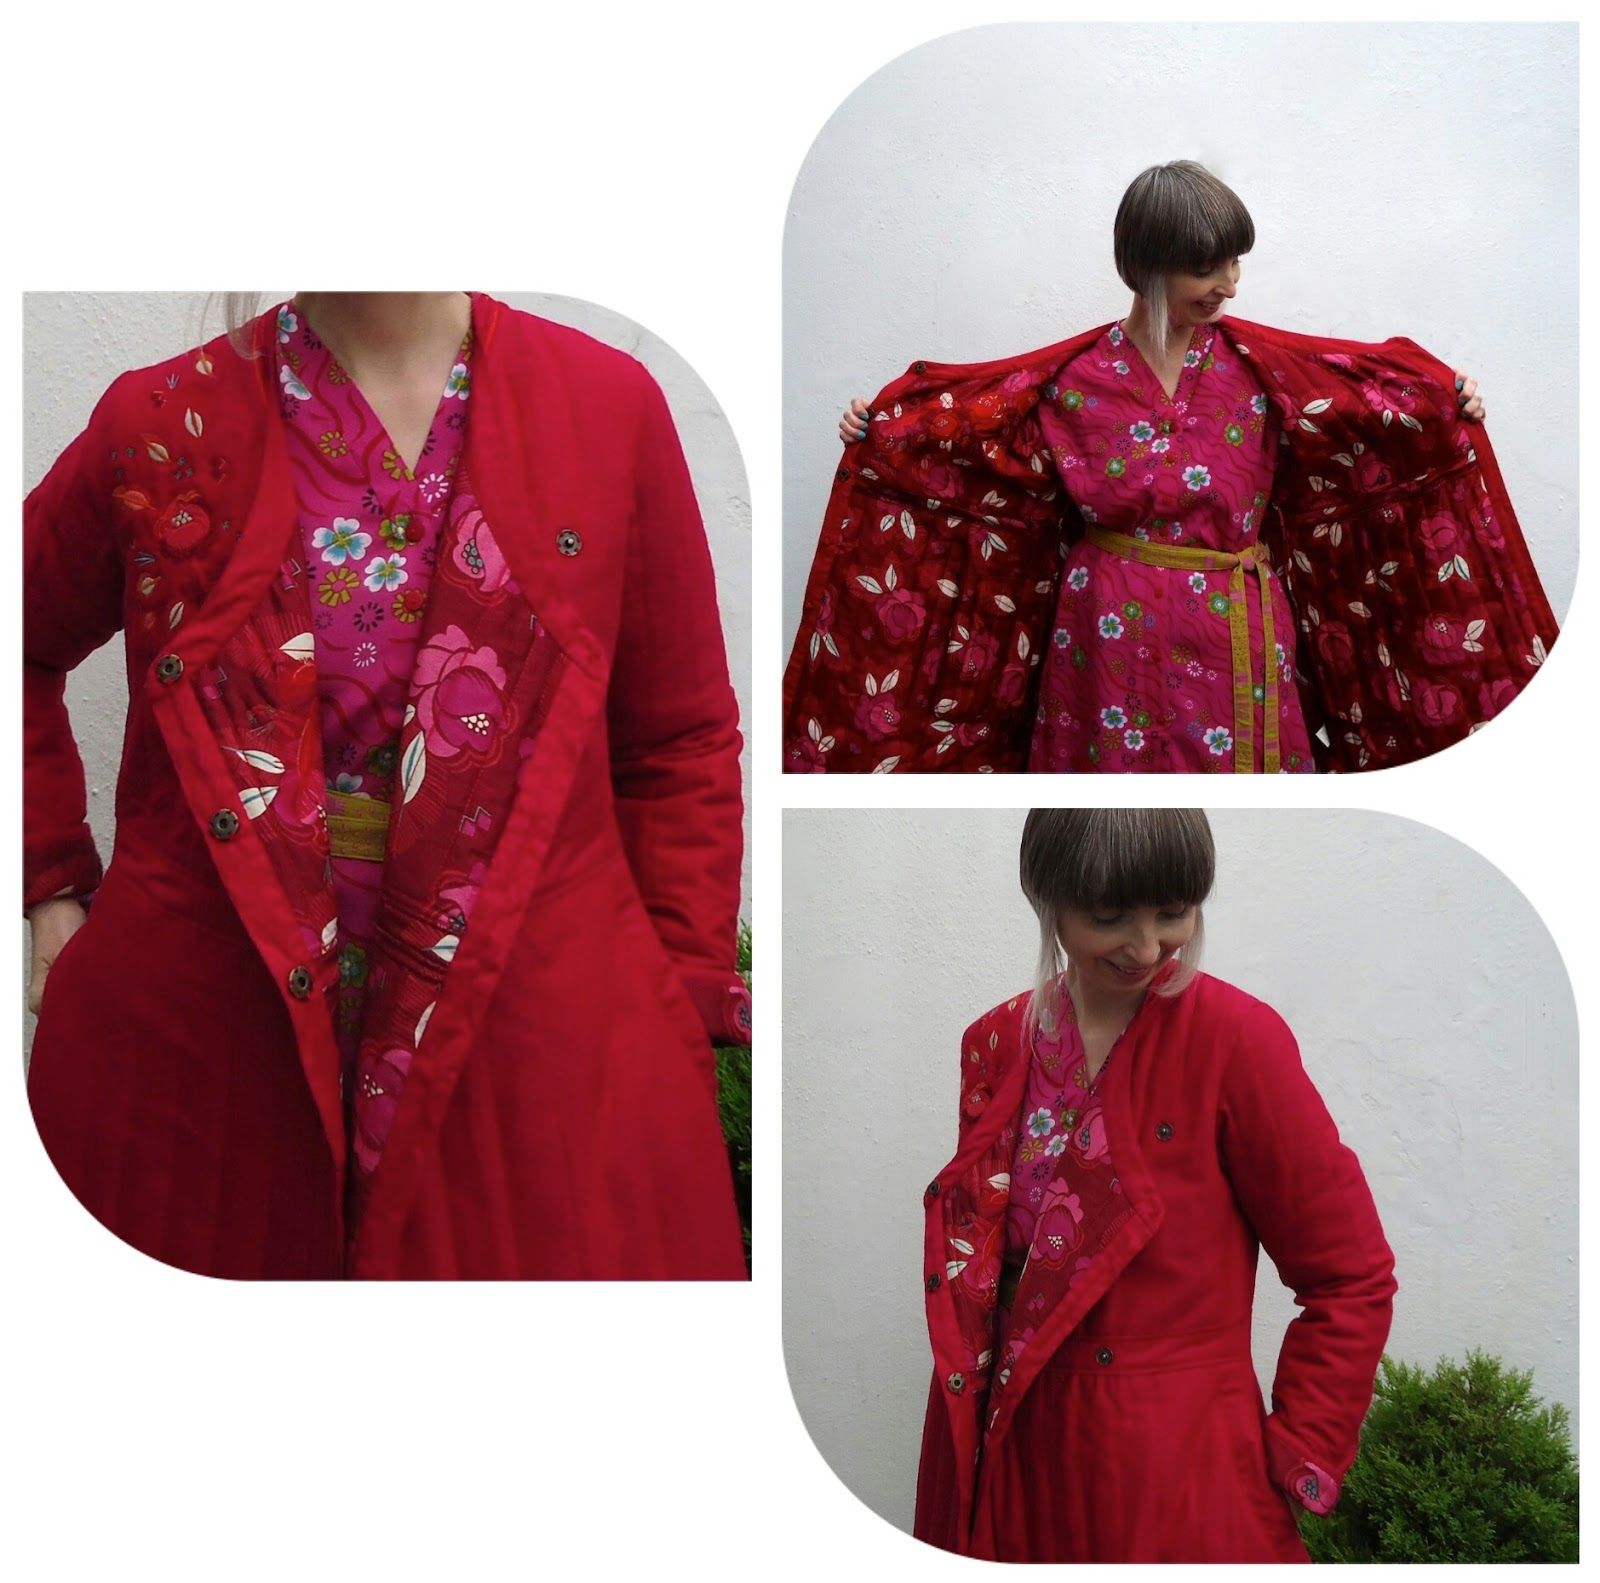 Inside the Li Wei coat is lined with Xiang bright rose print